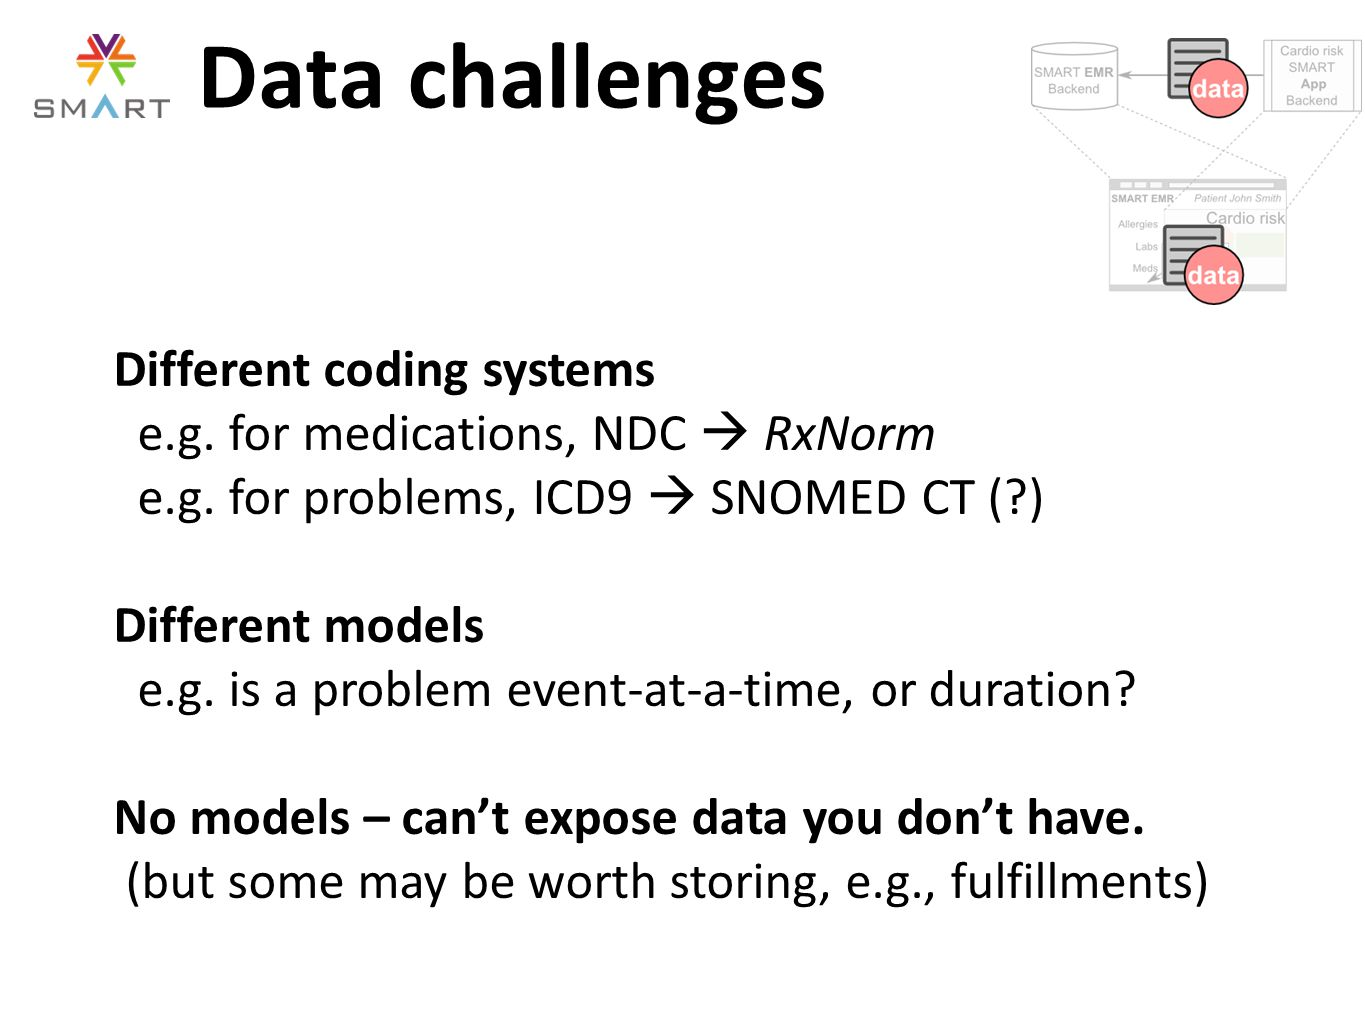 Data challenges Different coding systems e.g. for medications, NDC  RxNorm e.g. for problems, ICD9  SNOMED CT (?) Different models e.g. is a problem